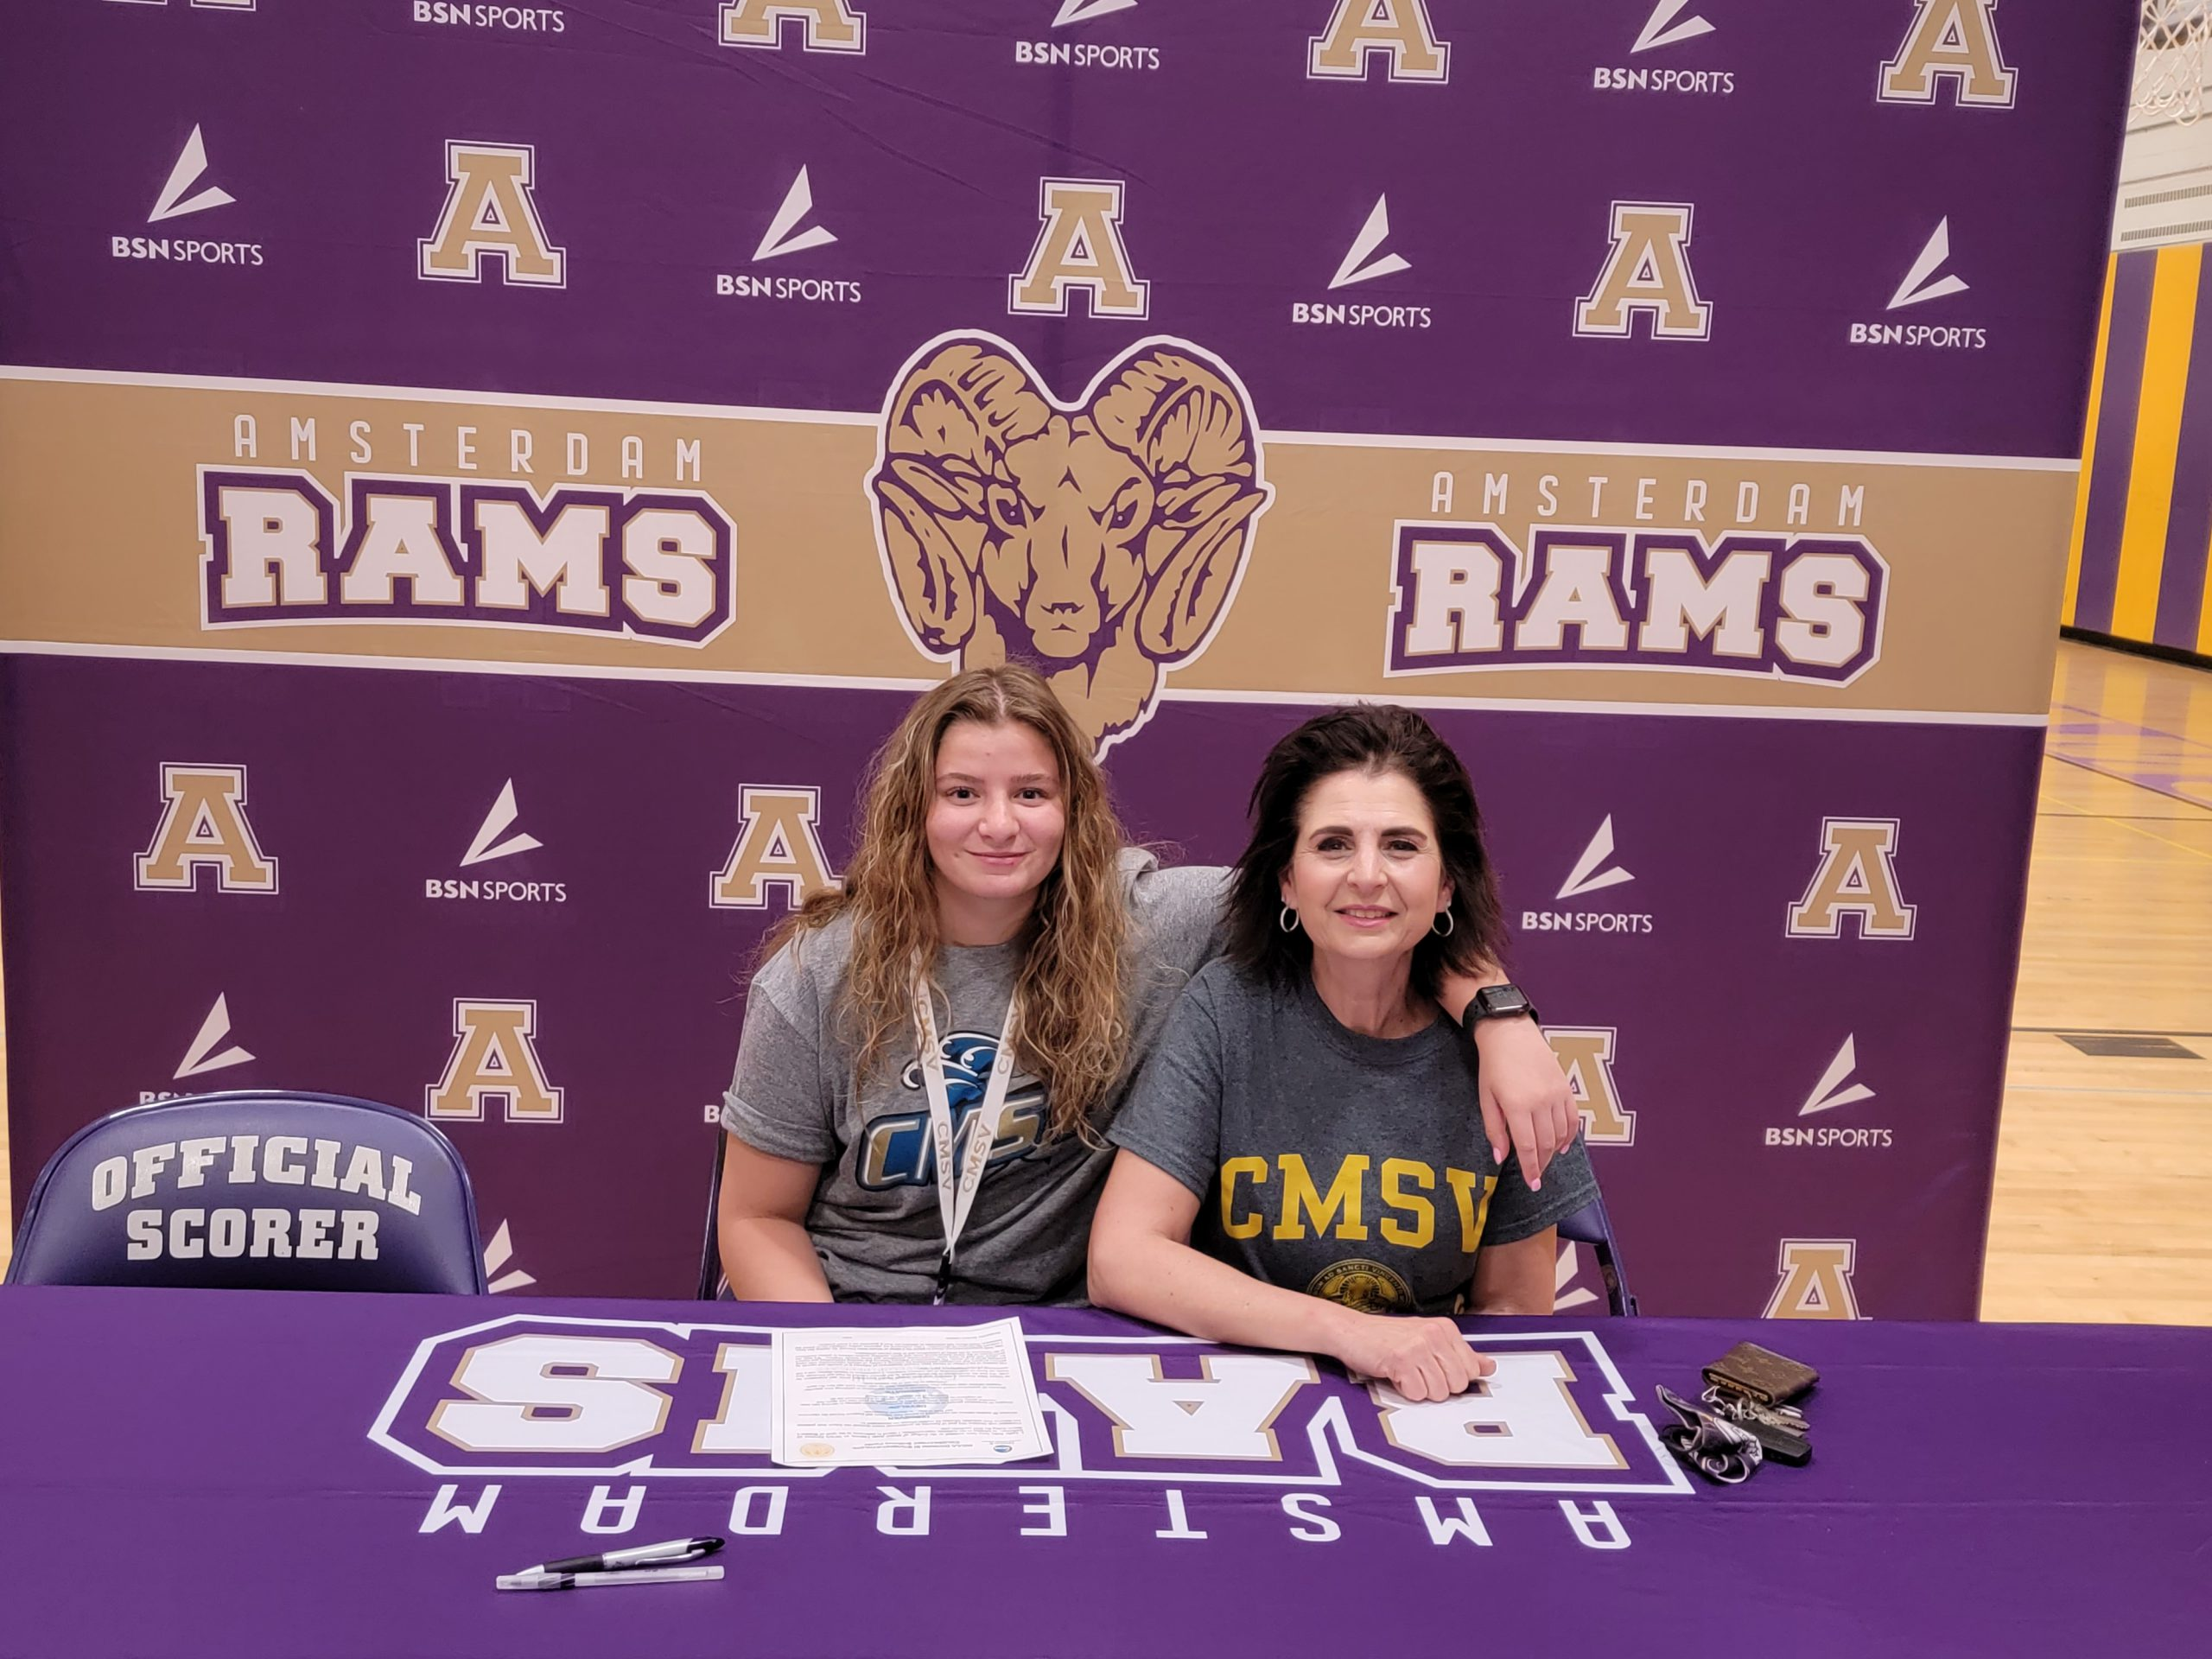 female athlete and mom sit together at a table with the Rams banner behind them